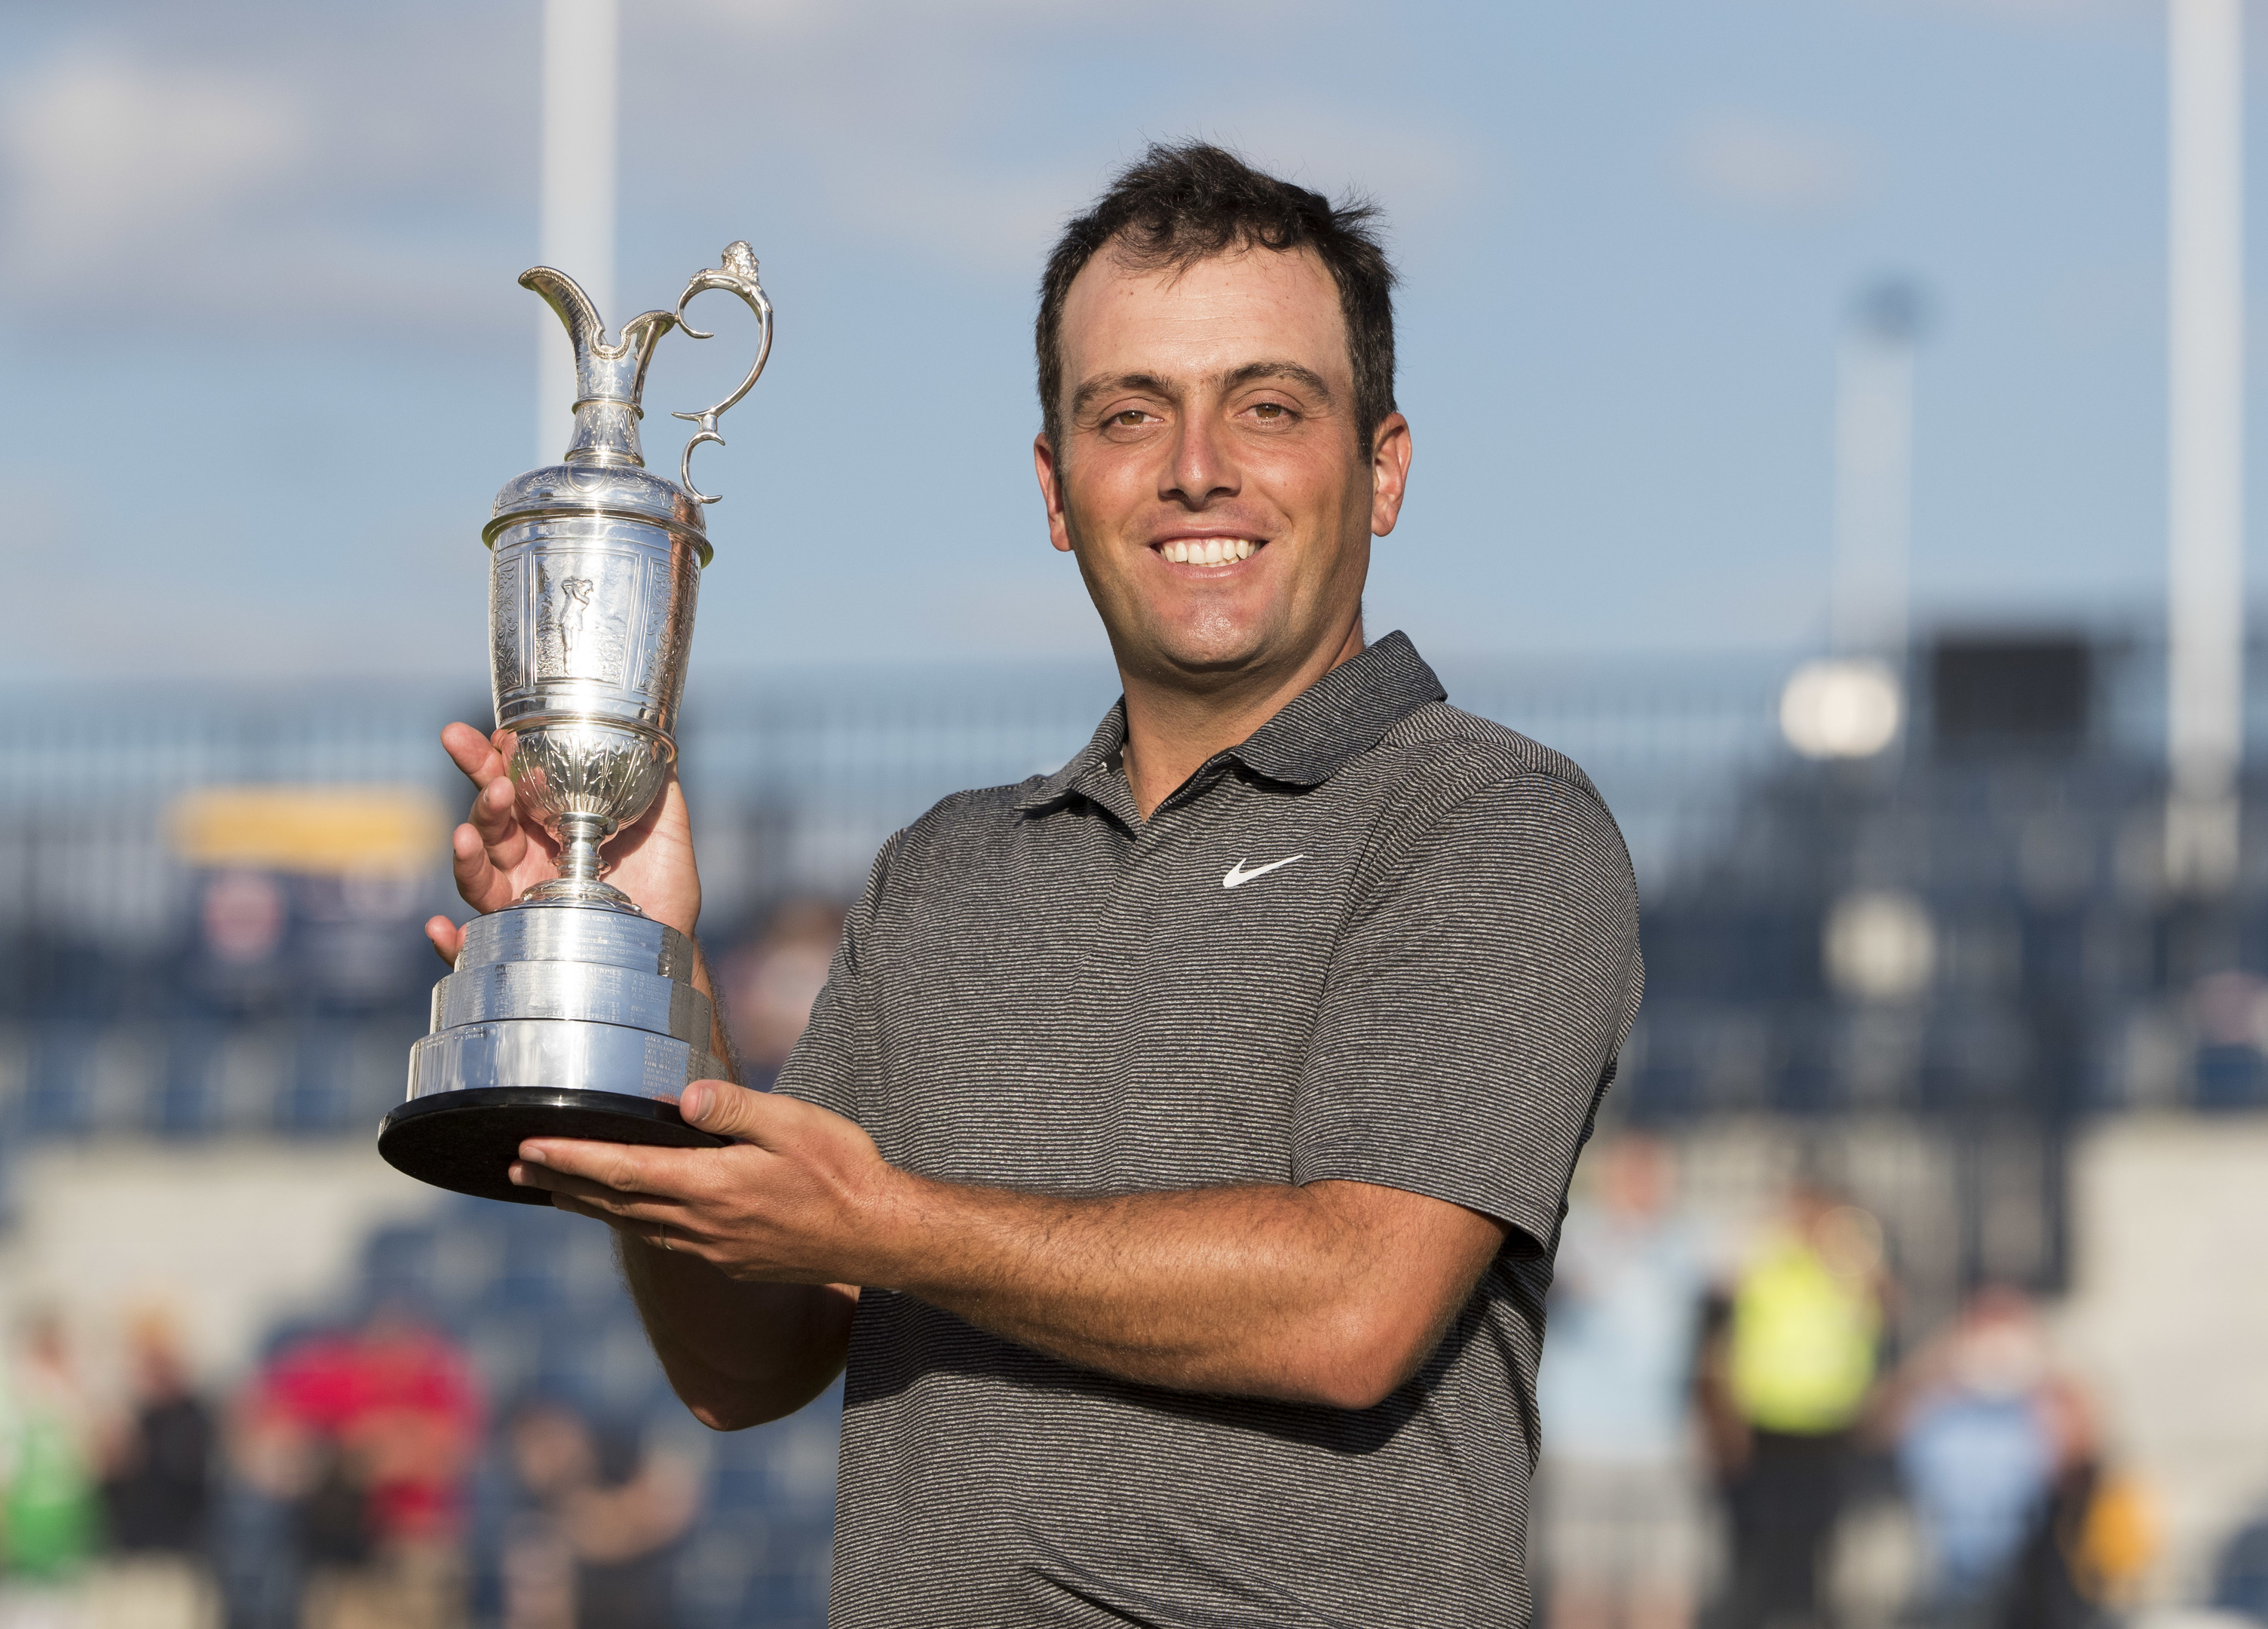 Italy's Francesco Molinari celebrates his win with the Claret Jug.